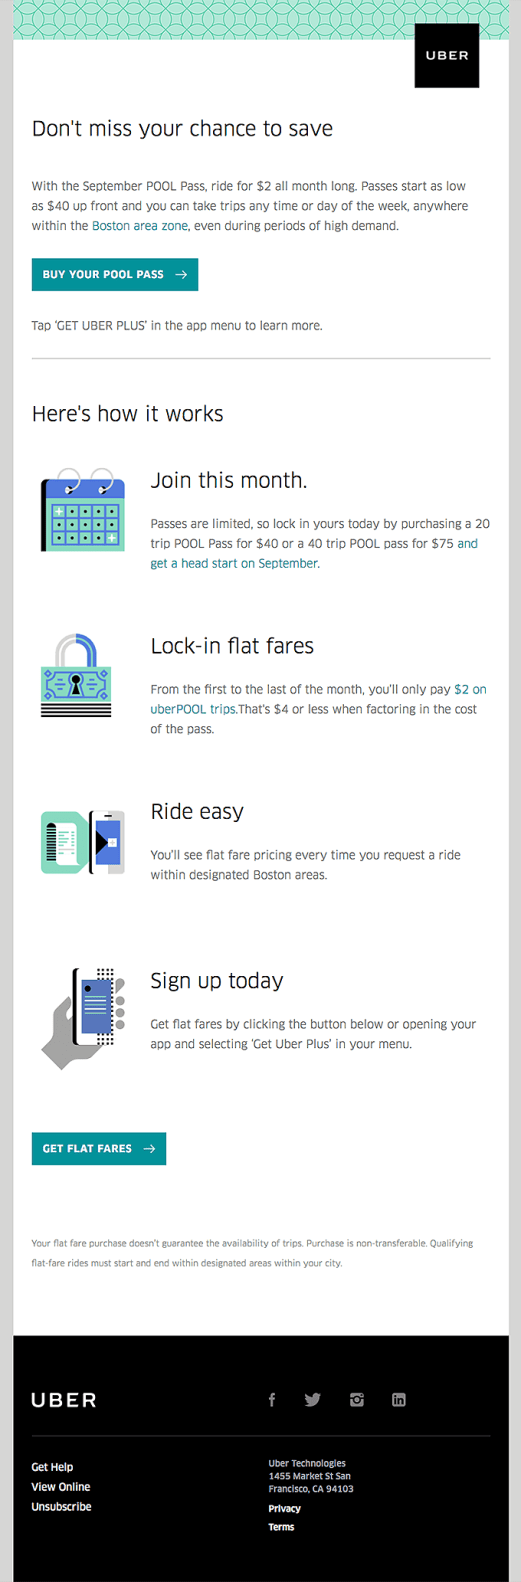 Uber promotional email campaigns